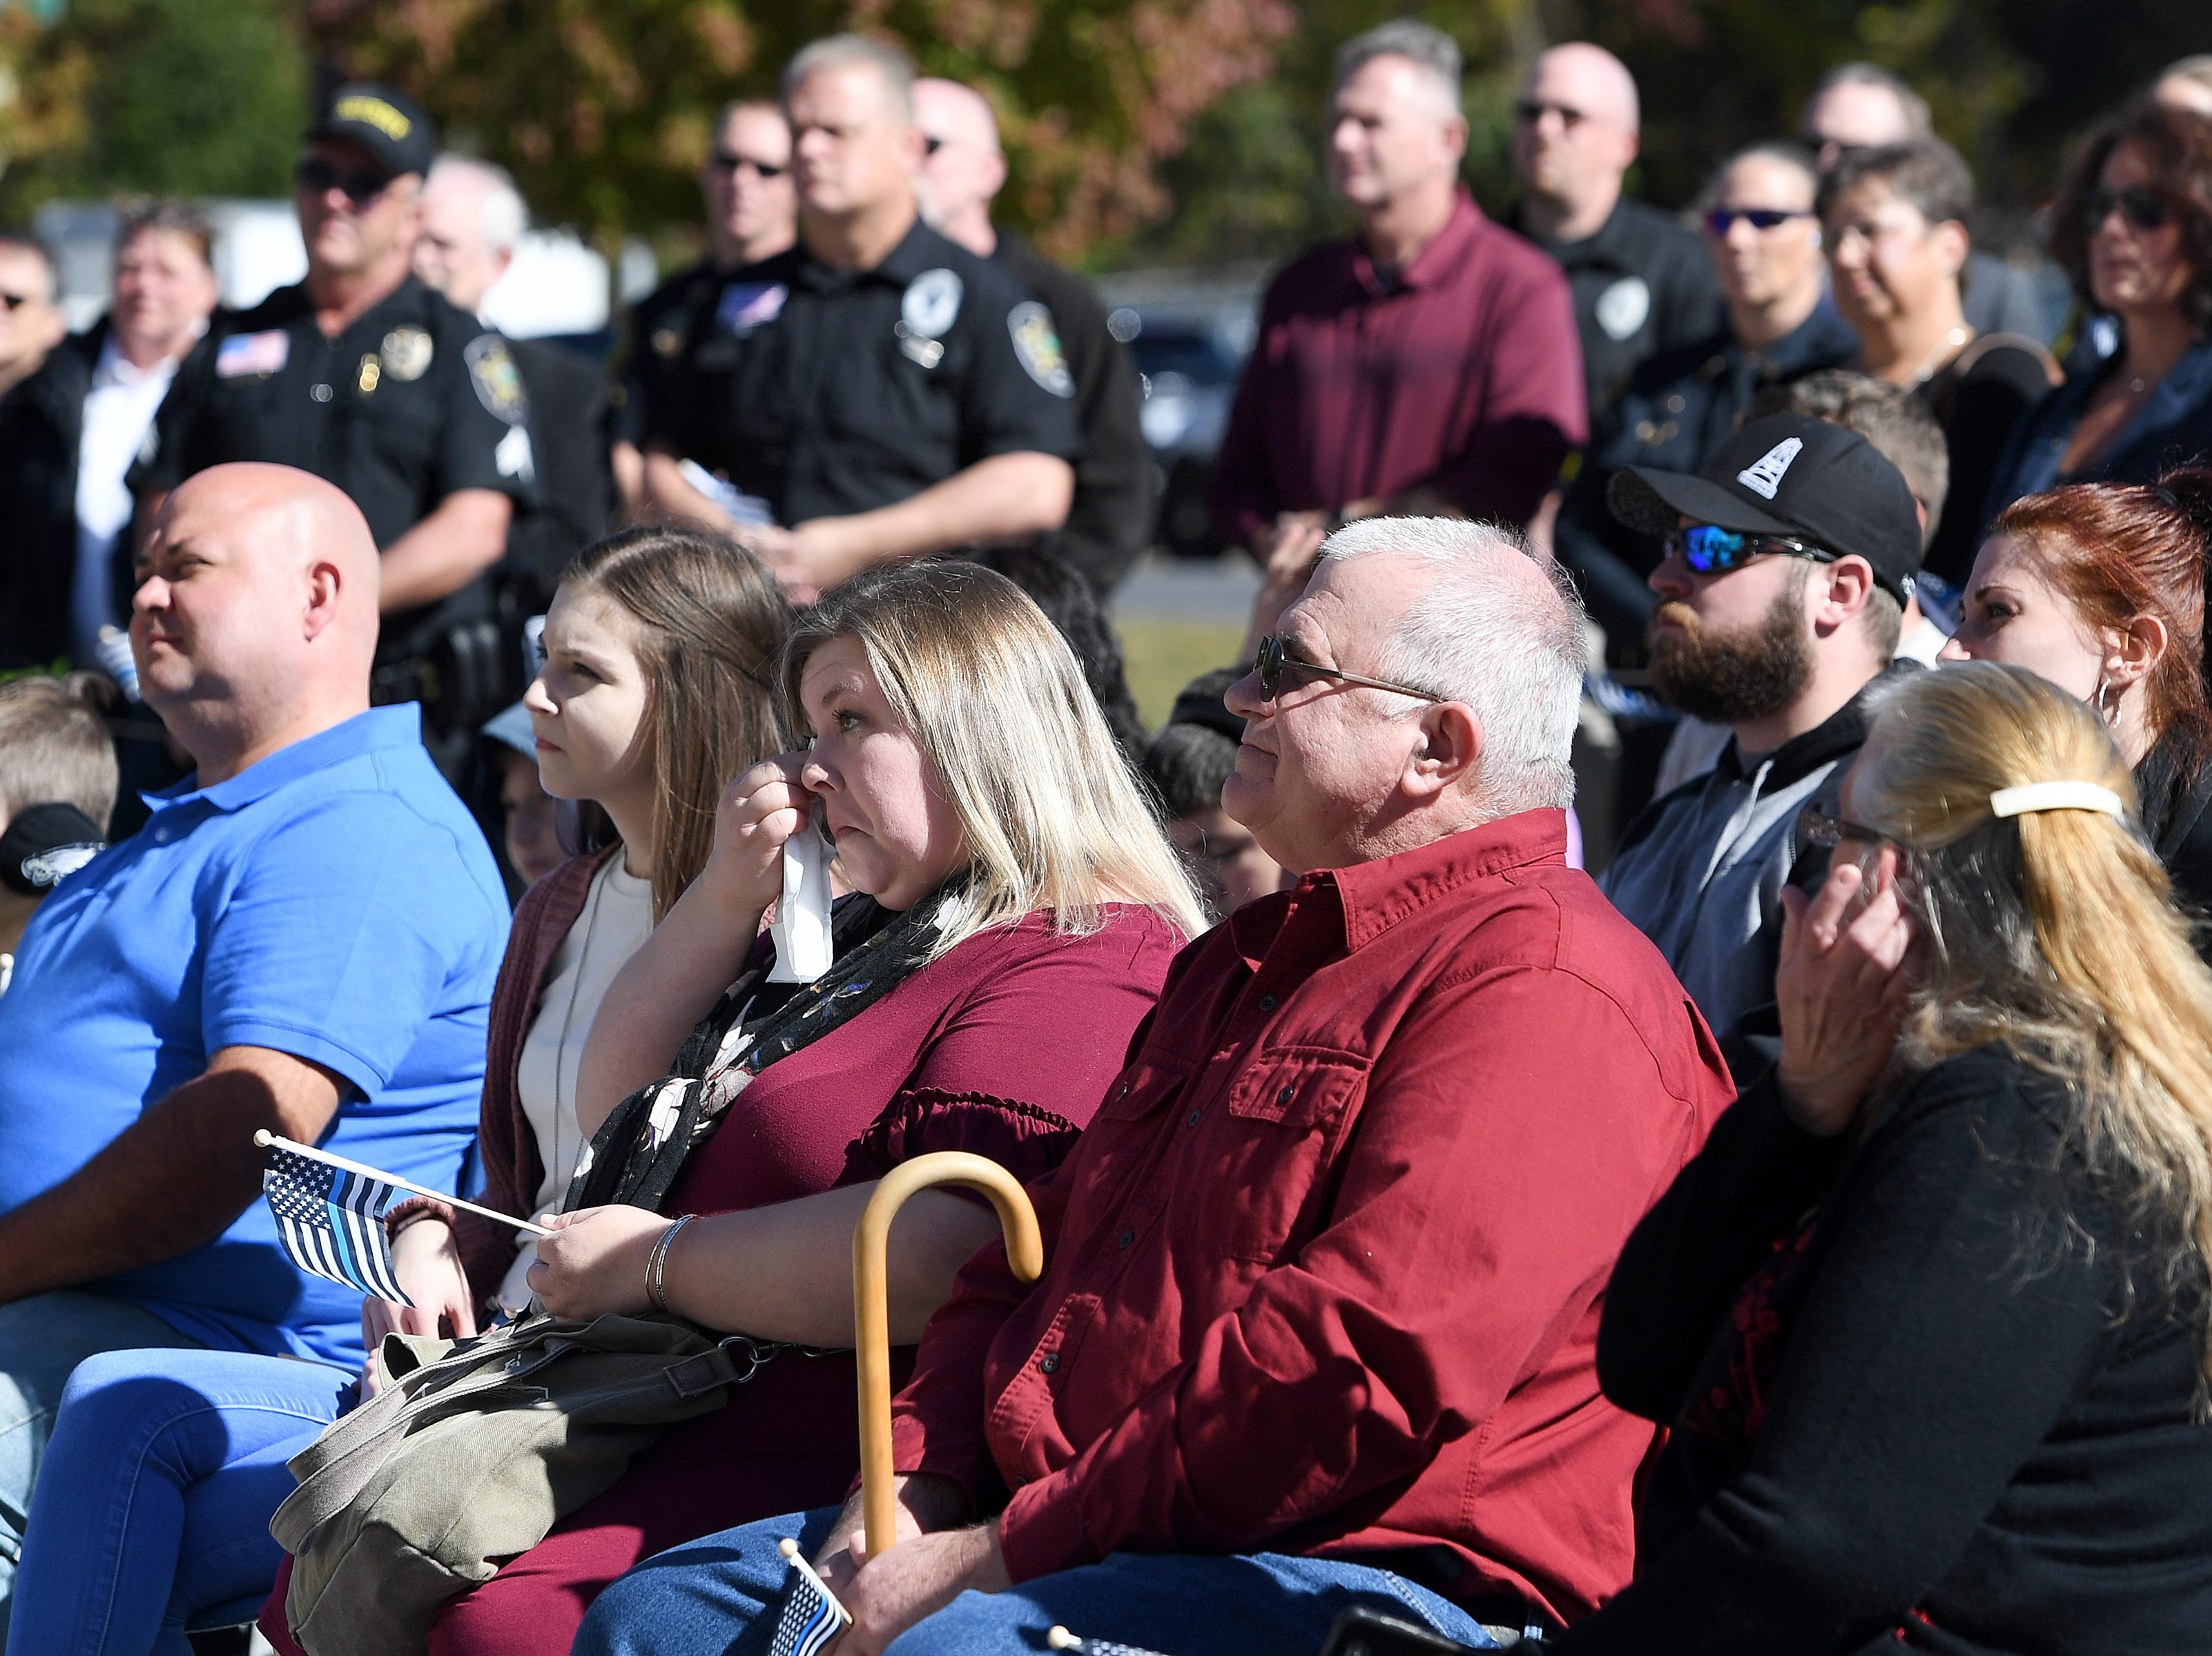 Robert Bingaman's widow Genevieve Ledbetter Bingaman, center, wipes her eyes during a ceremony to dedicate a portion of Old Haywood Road to the Asheville police officer at the Traffic Safety Office on the five-year-anniversary of his death on Oct. 29, 2018.